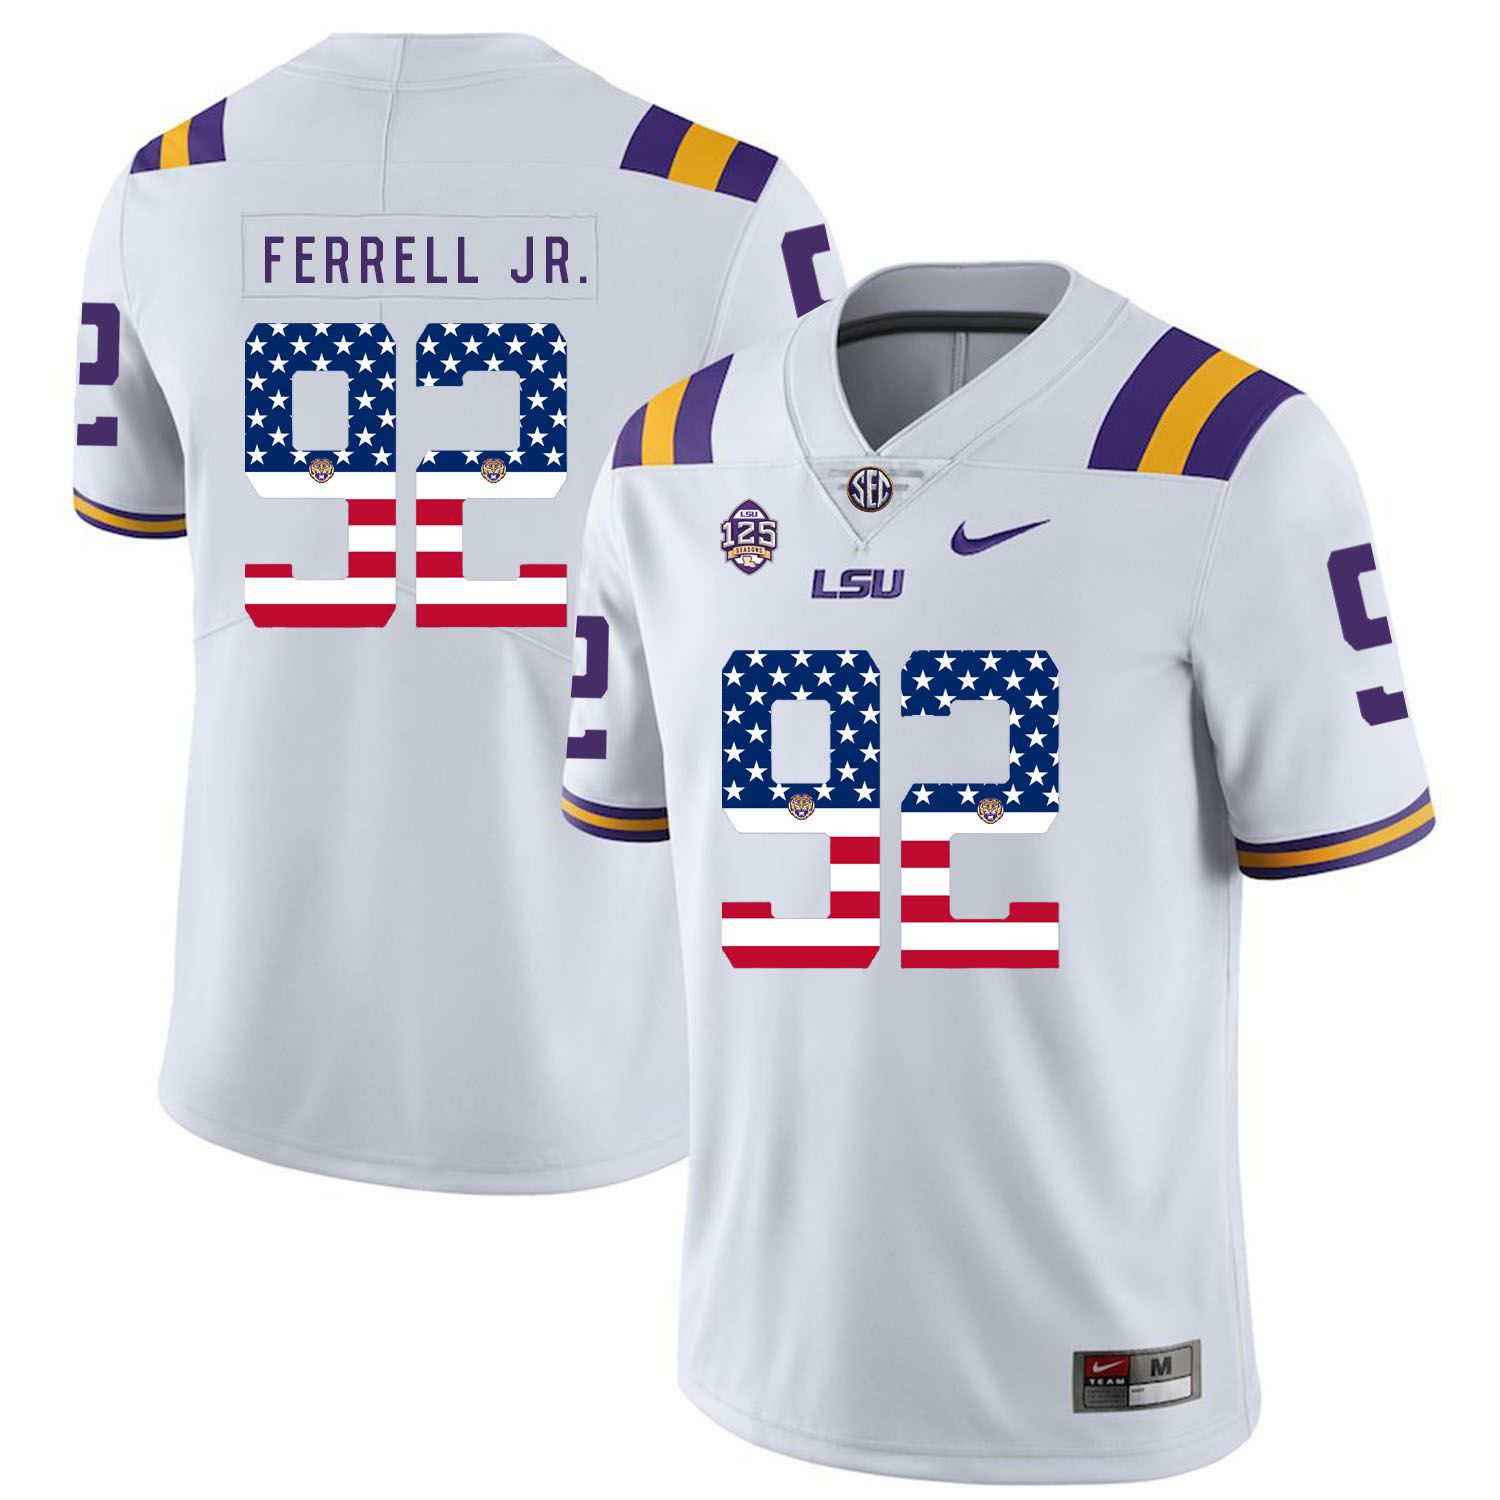 Men LSU Tigers 92 Ferrell jr White Flag Customized NCAA Jerseys